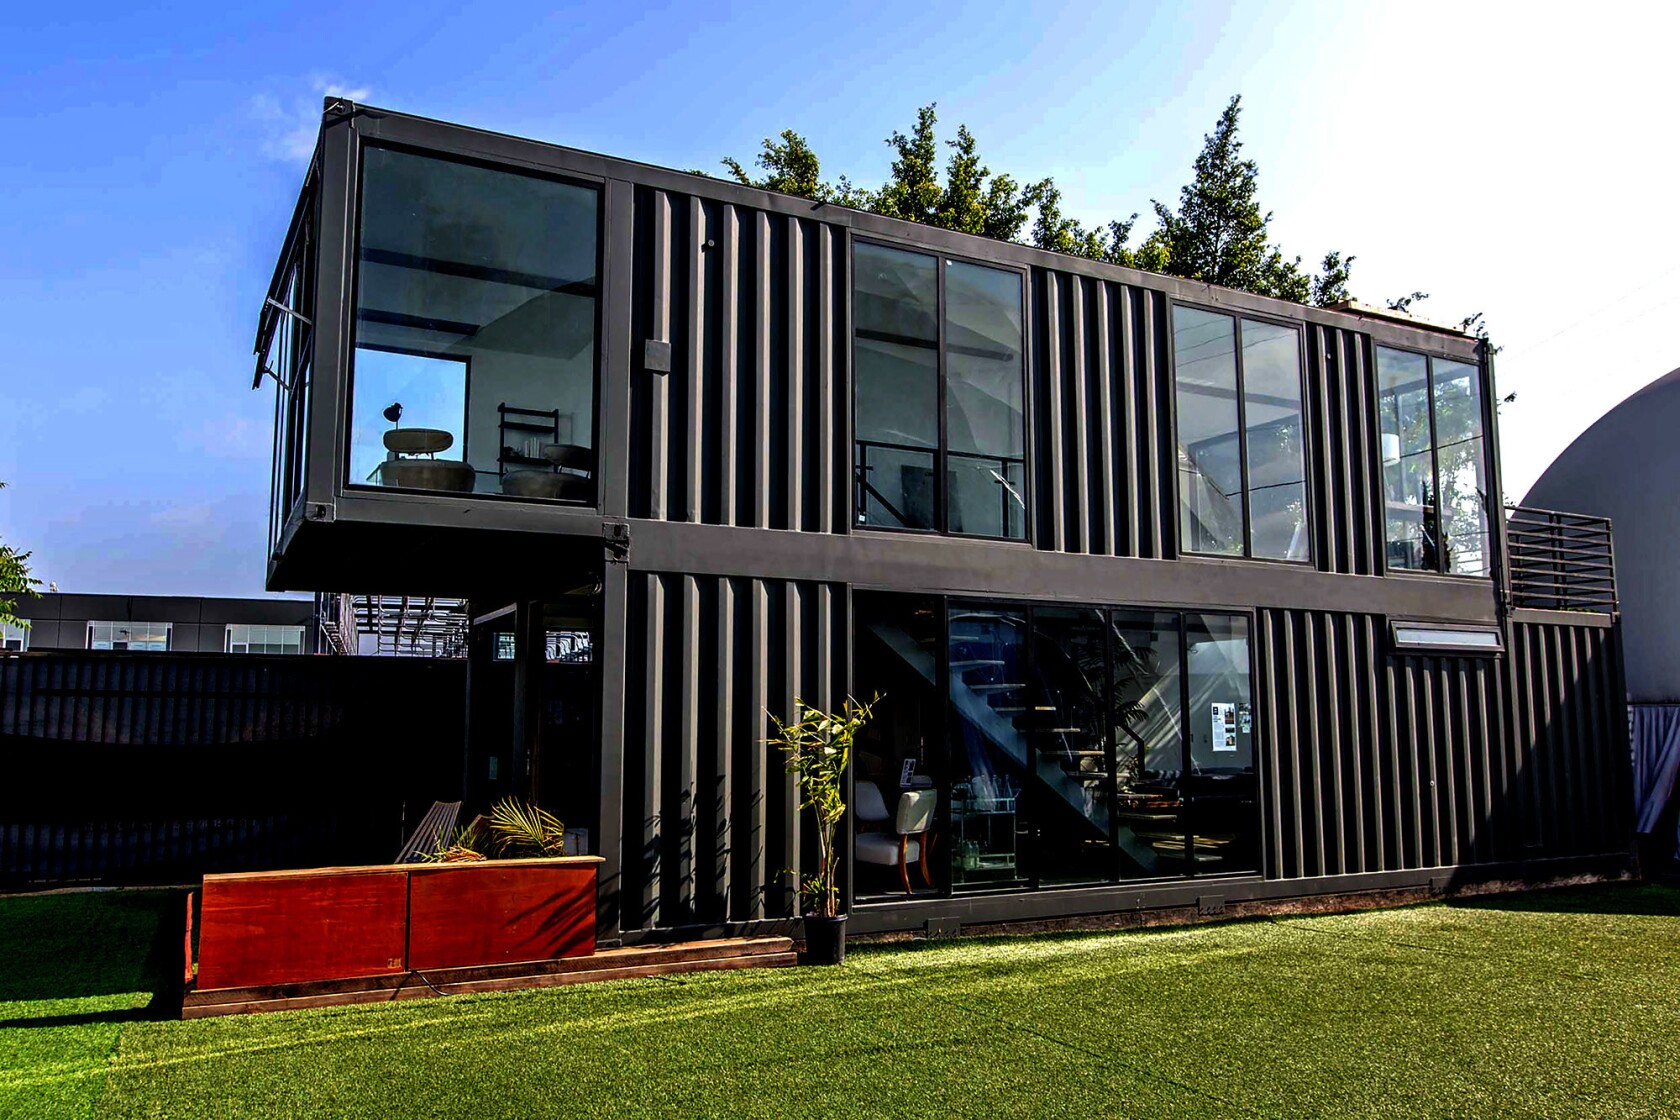 The beauty and affordability of modular living